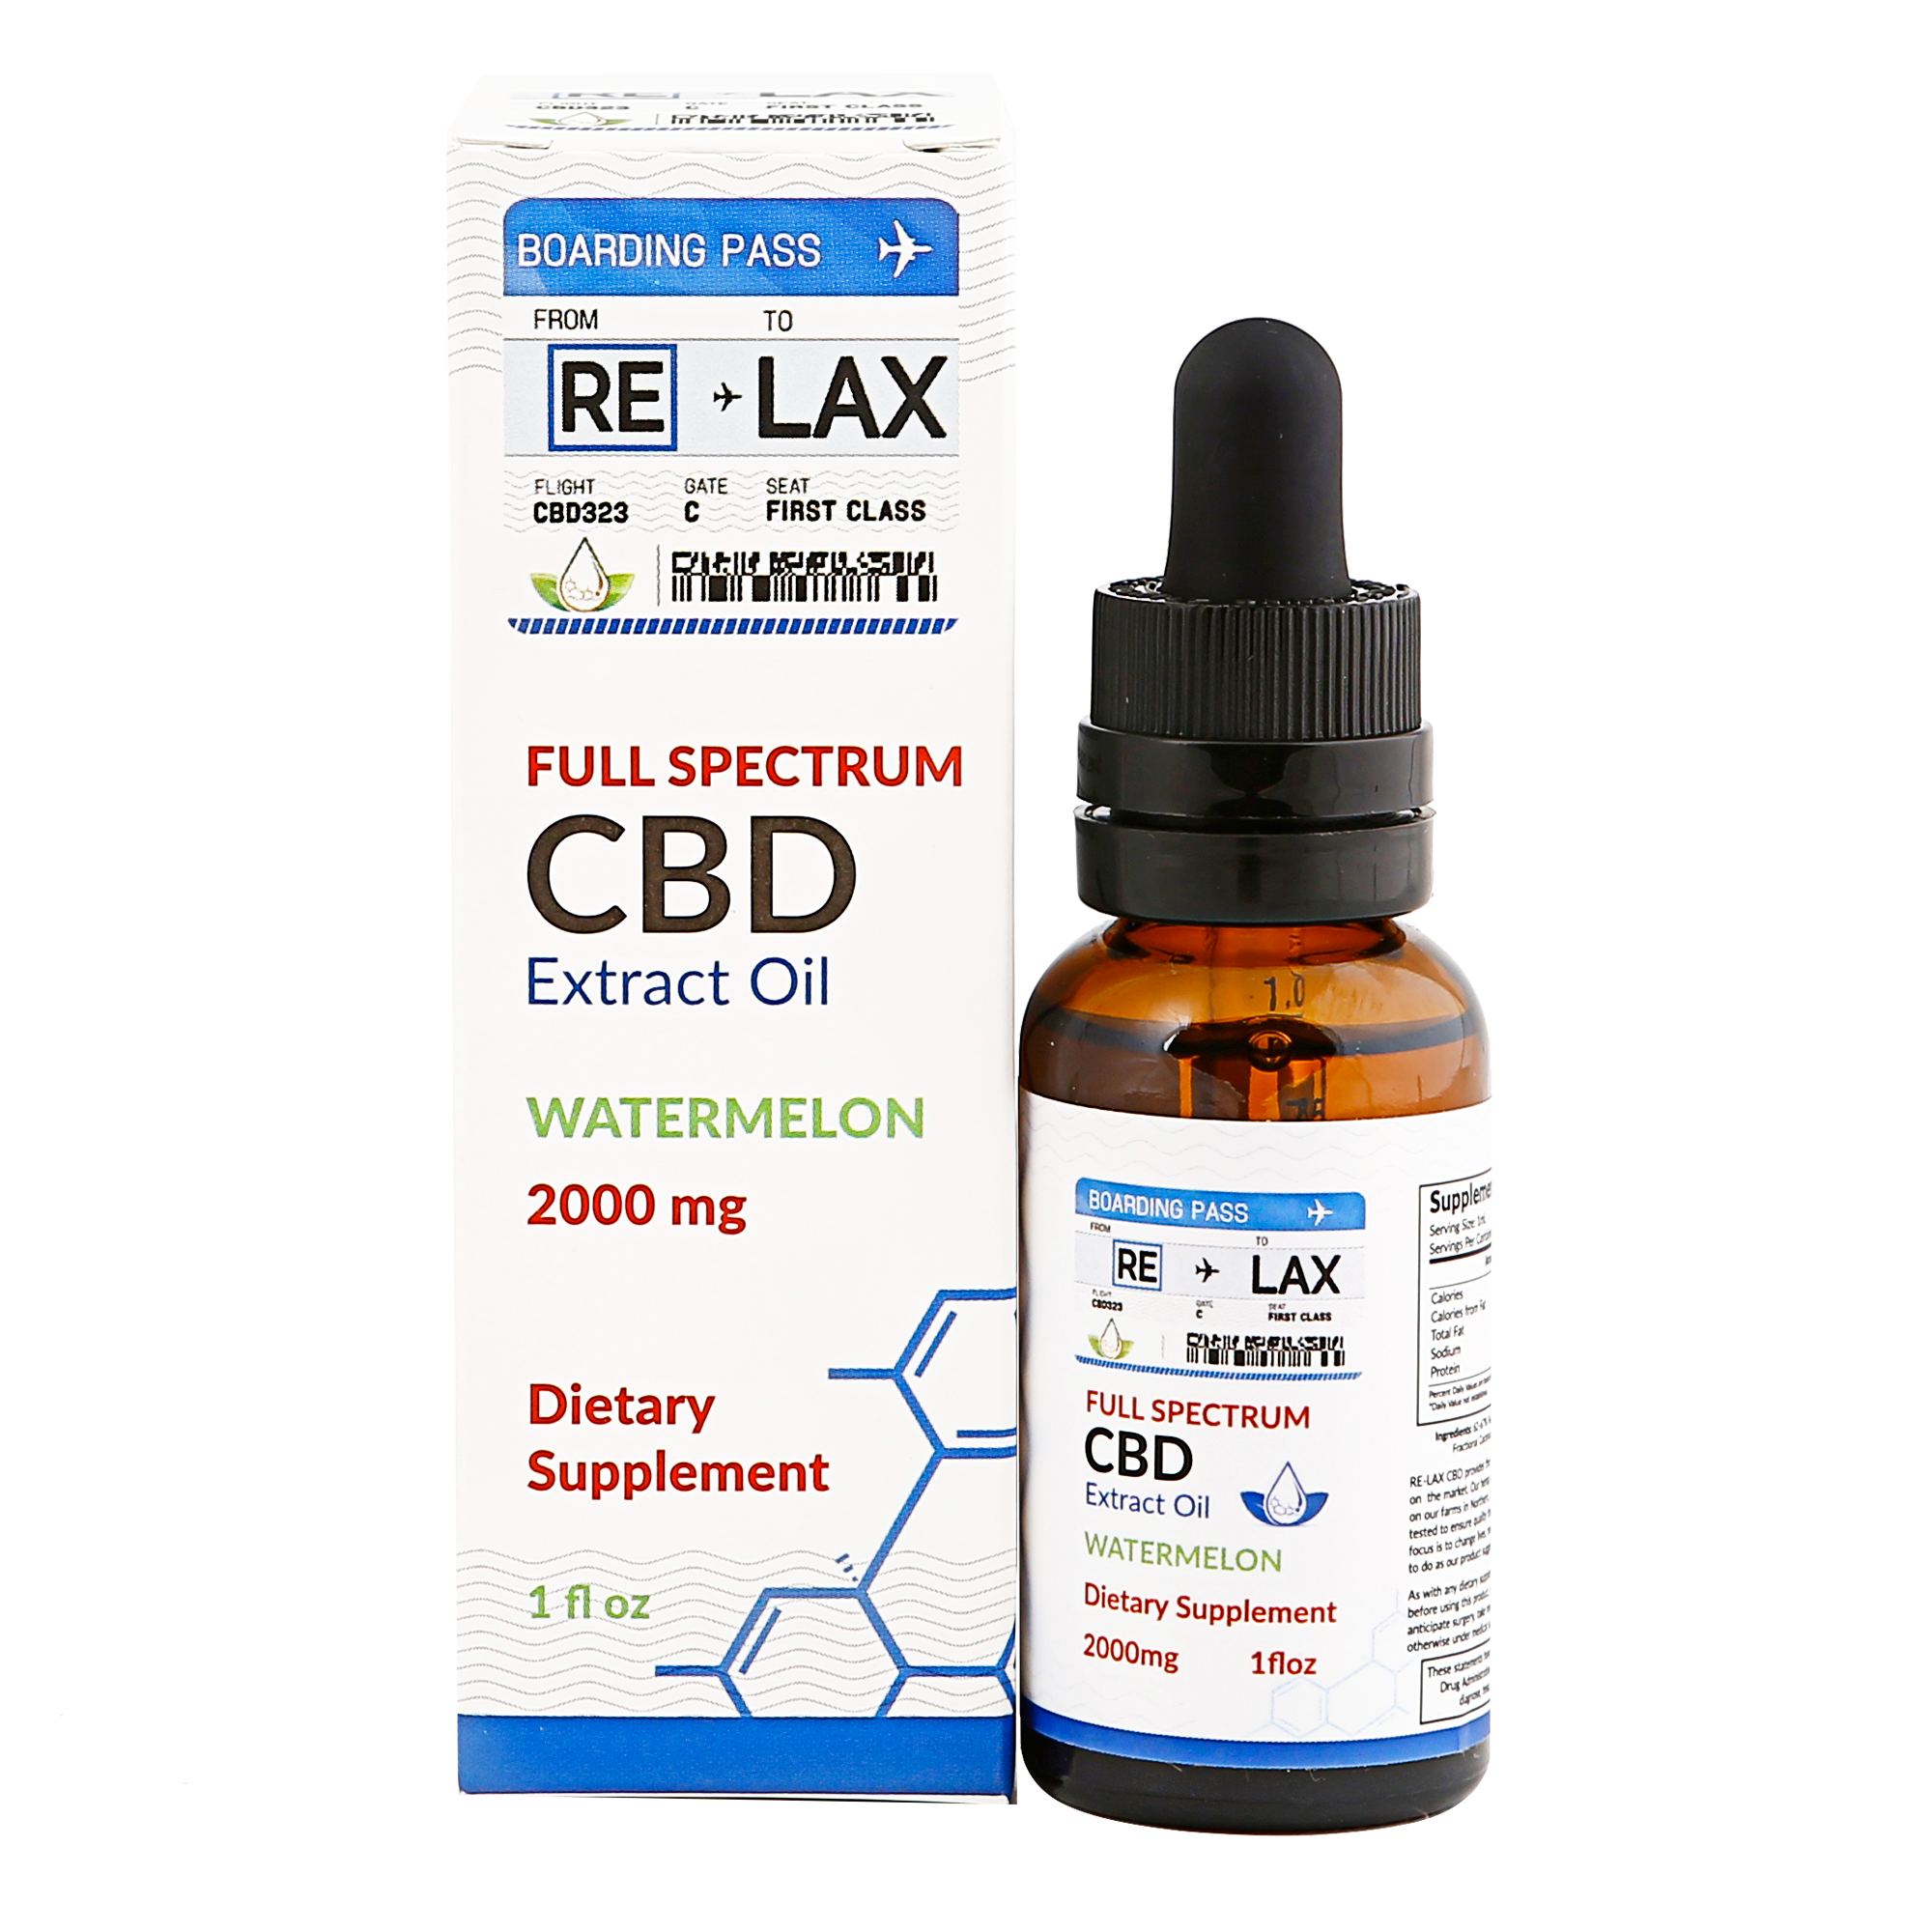 RE-LAX CBD Oil – Watermelon 2000mg